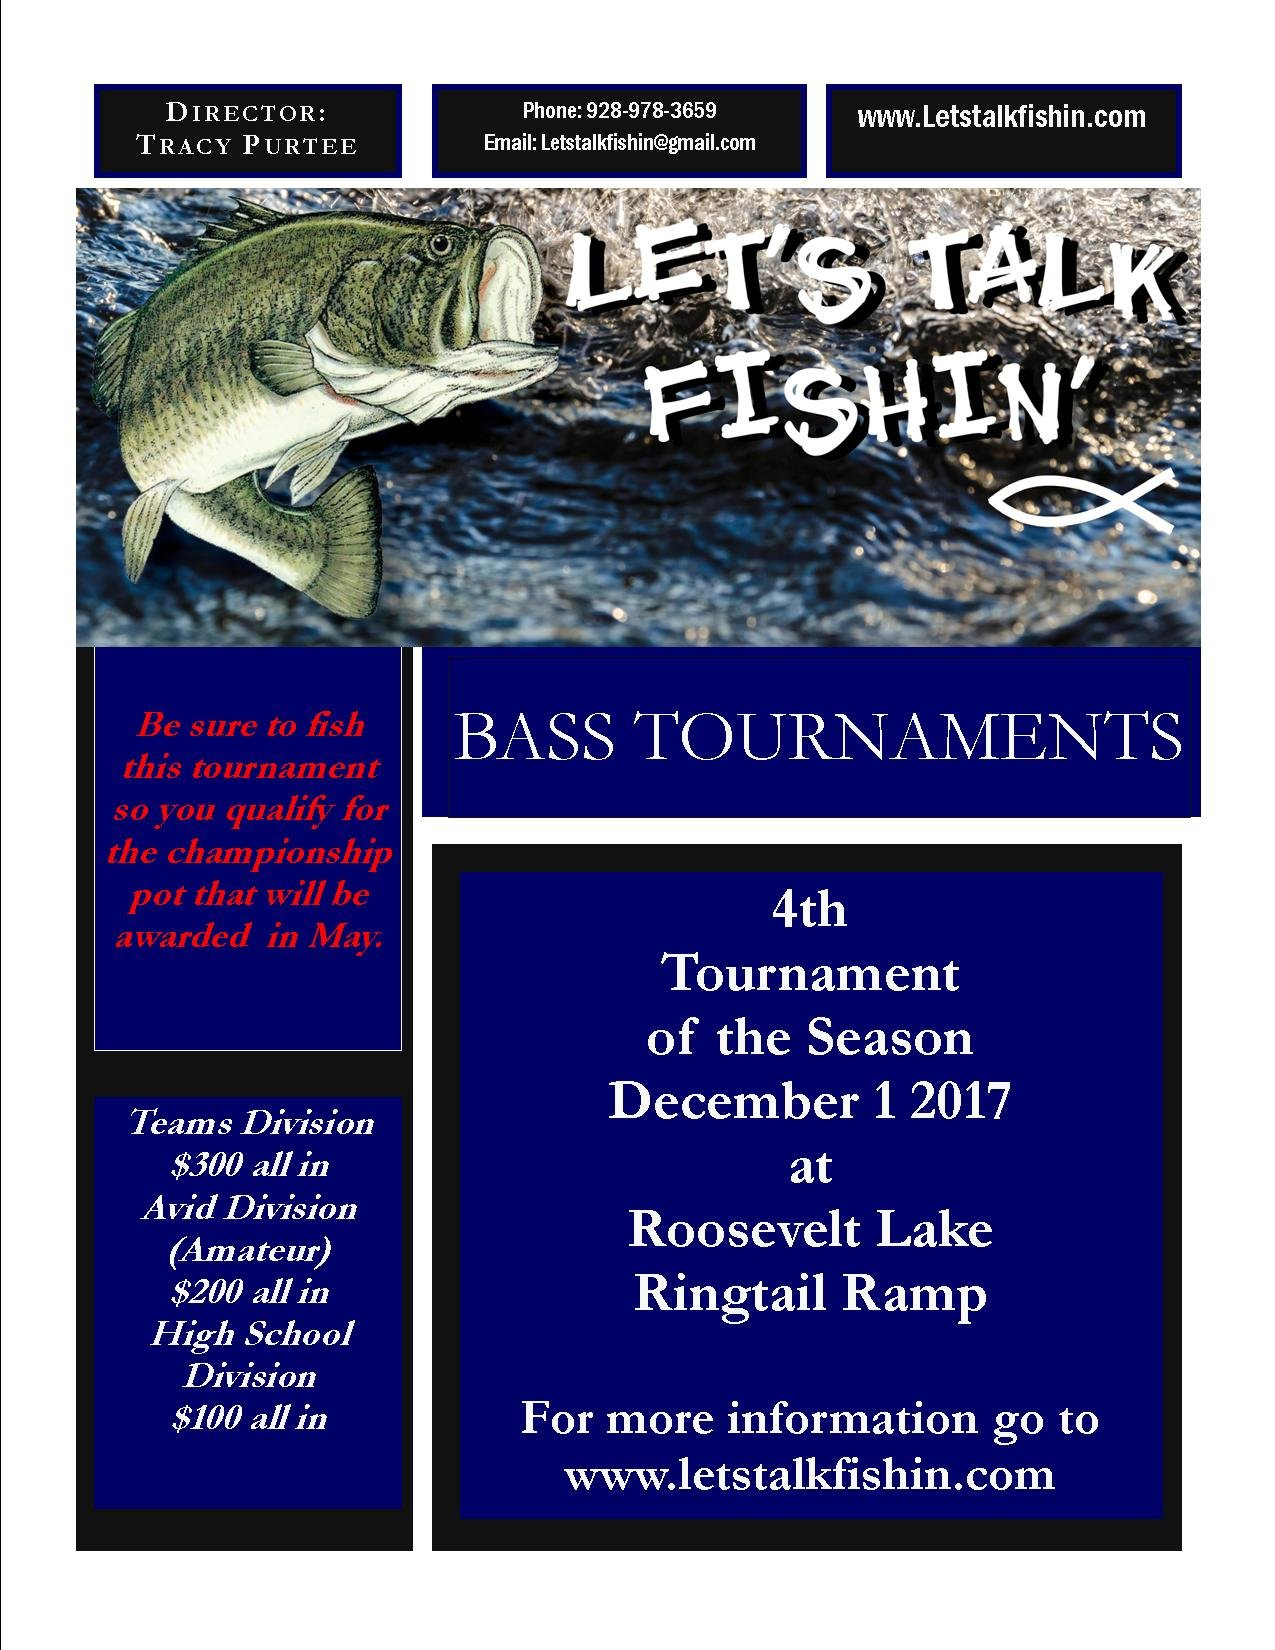 Click image for larger version  Name:4th Tournament.jpg Views:1588 Size:285.4 KB ID:96770